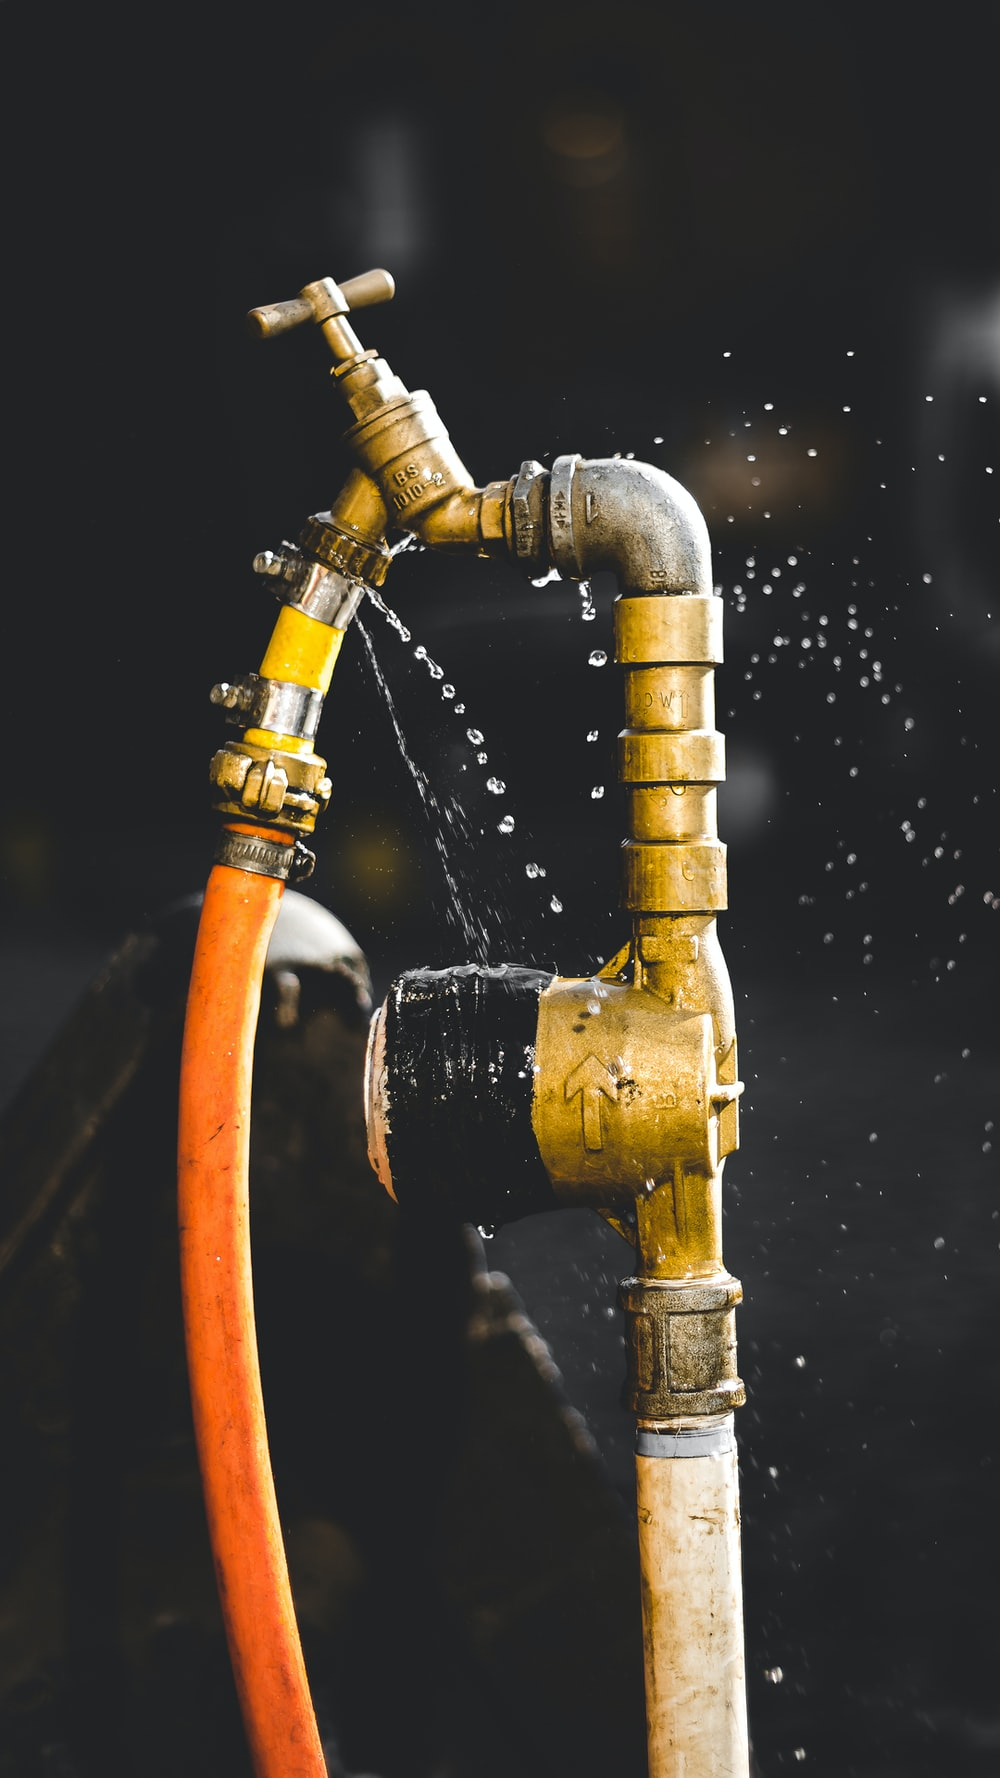 gold-colored faucet close-up photography